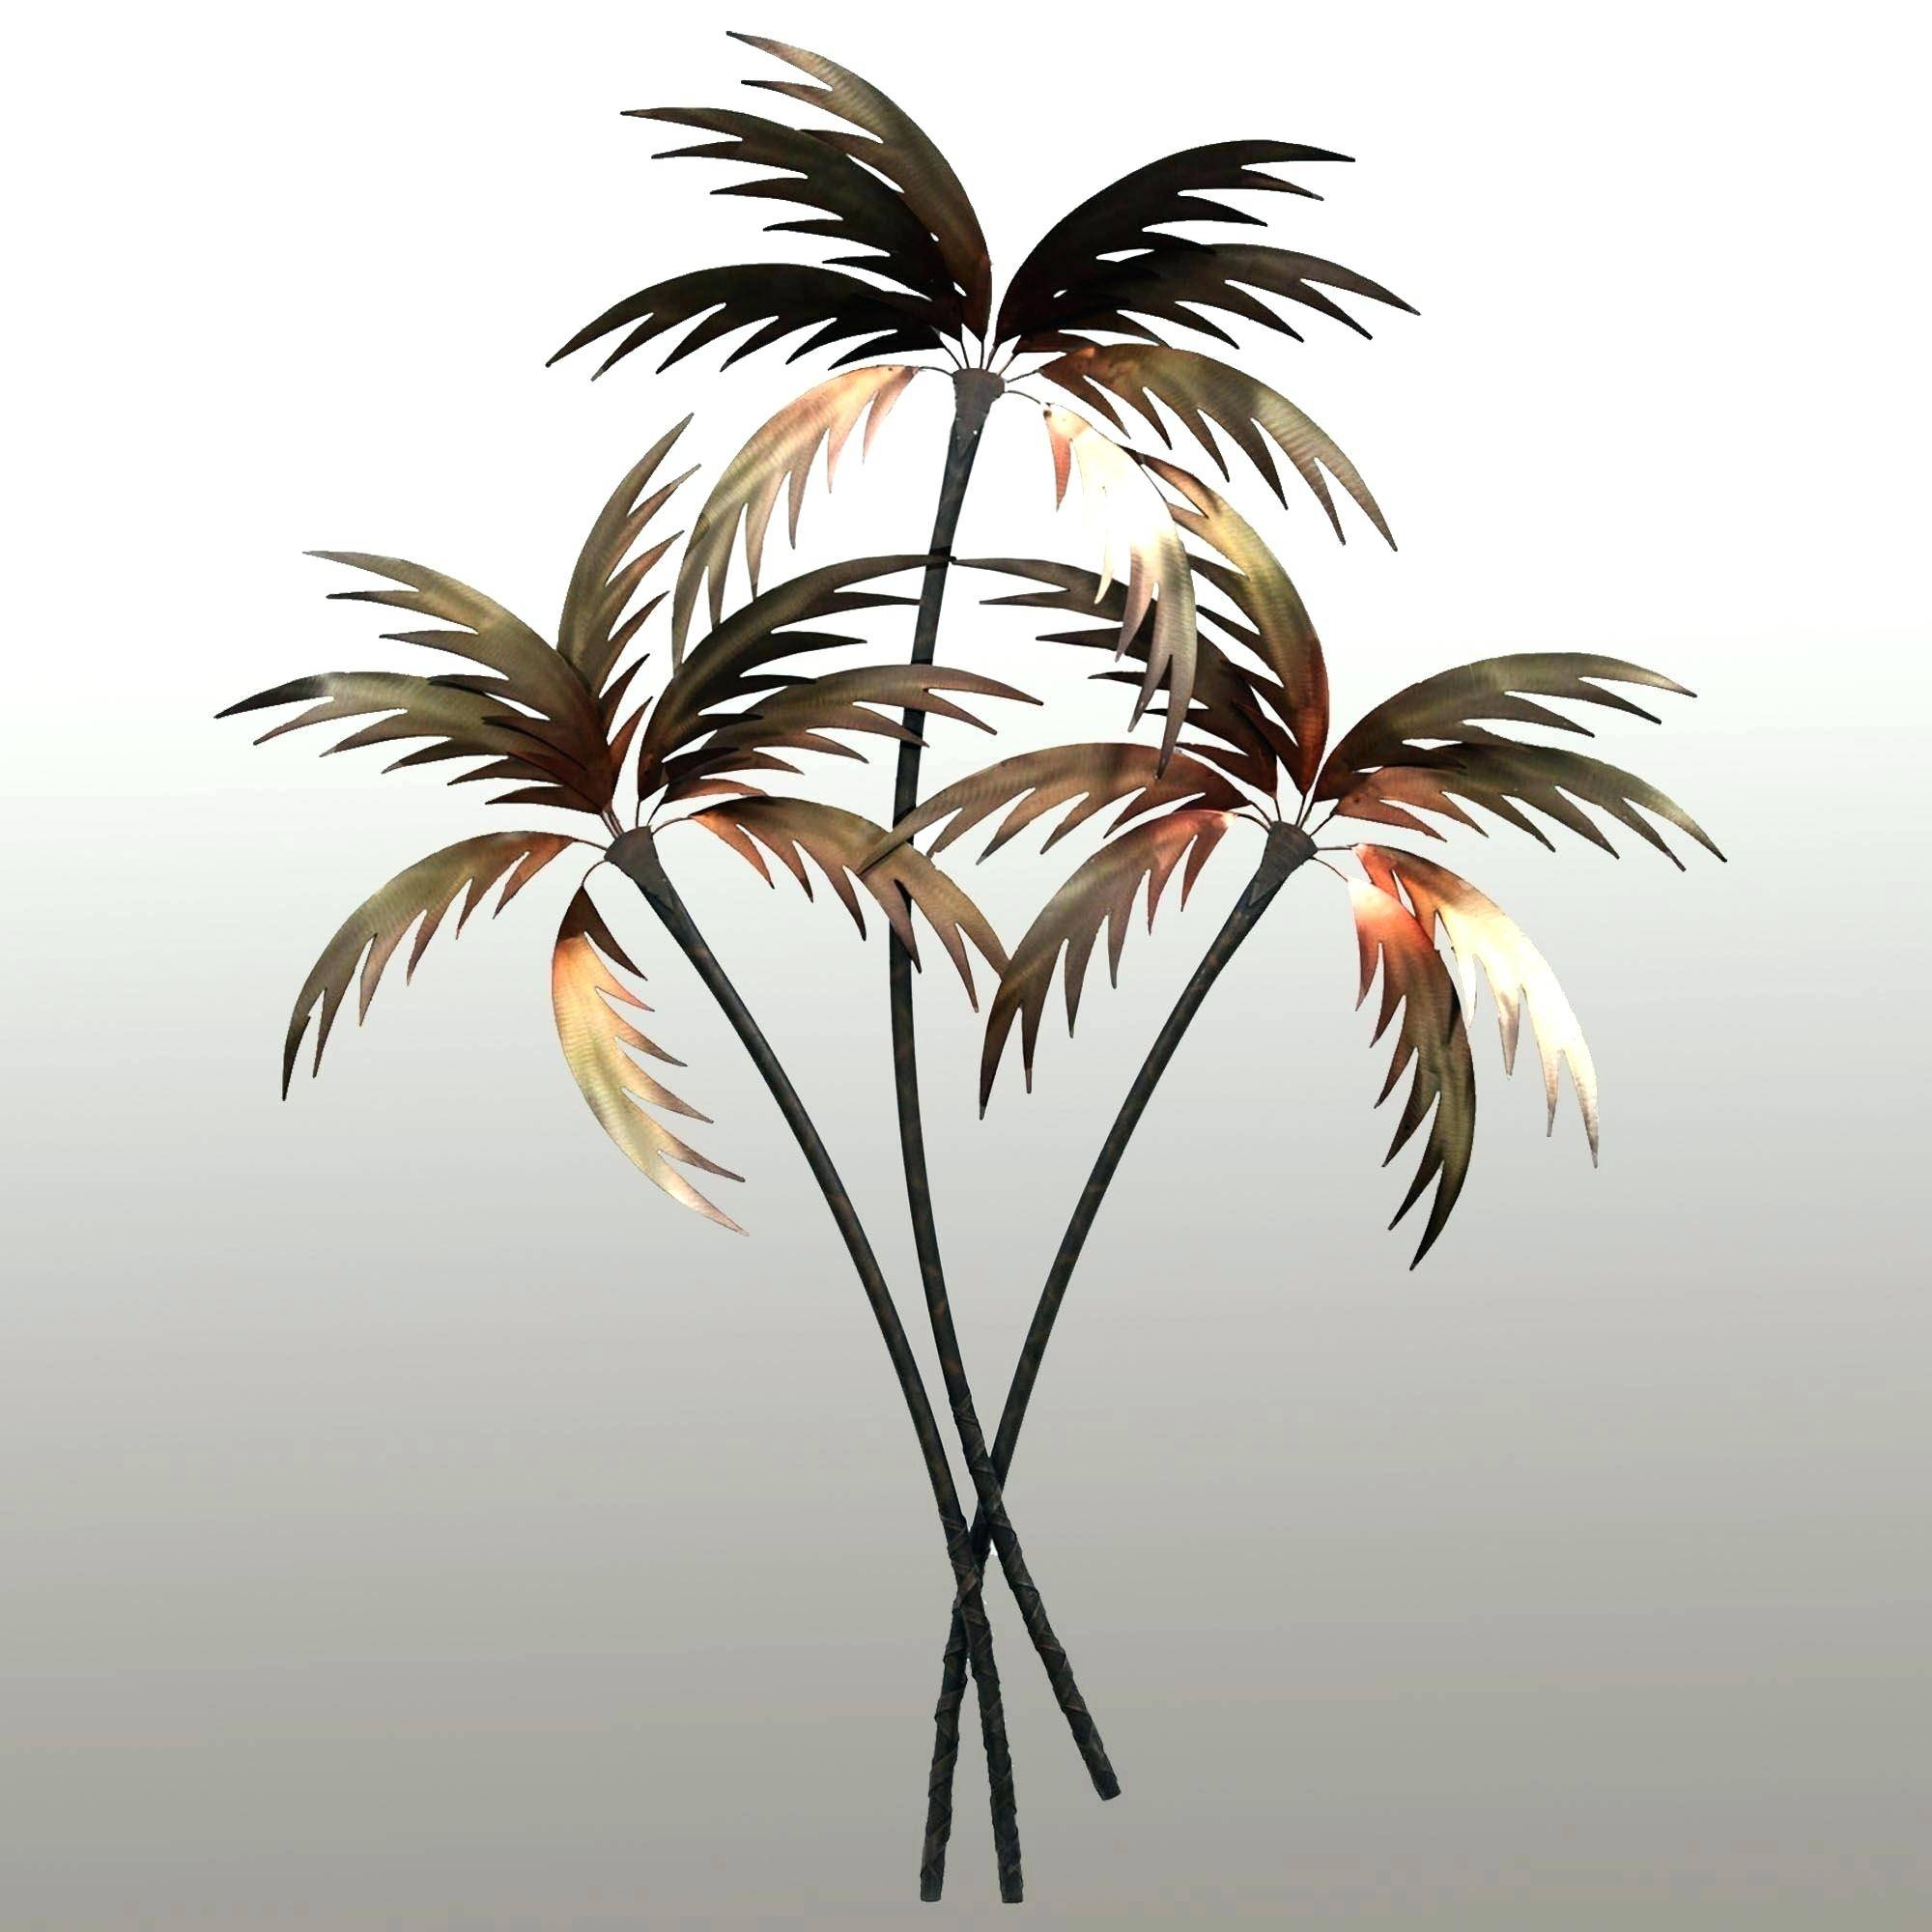 Wall Arts ~ Cool Palm Tree Wall Art Metal Family Tree Wall Art Diy For 2017 Metal Wall Art Palm Trees (View 4 of 20)